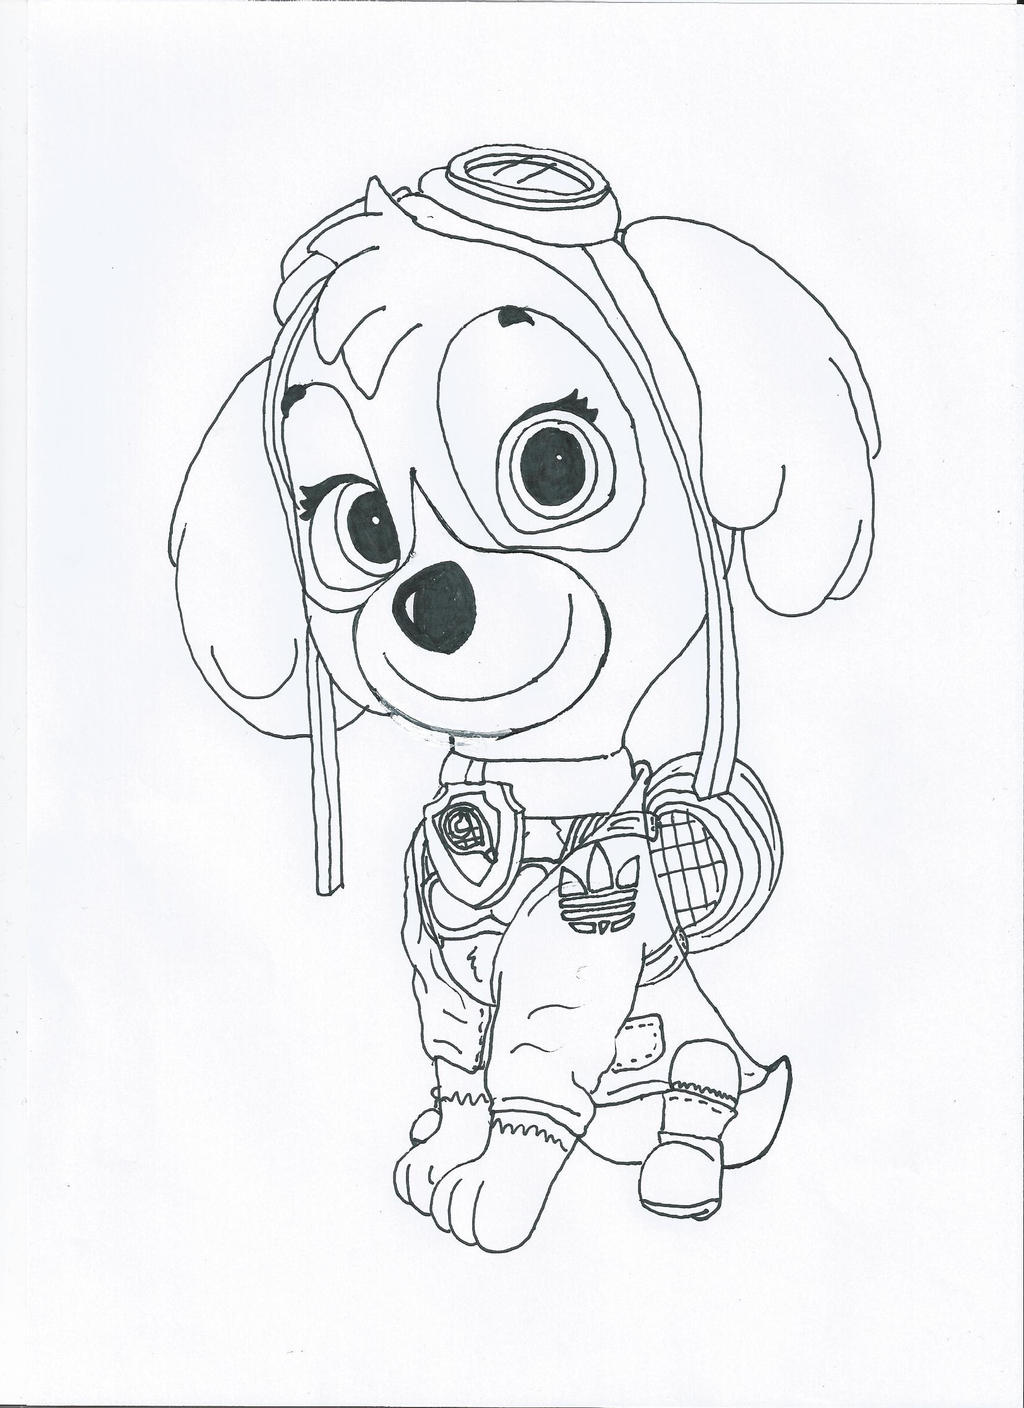 sky paw patrol coloring pages - photo#24